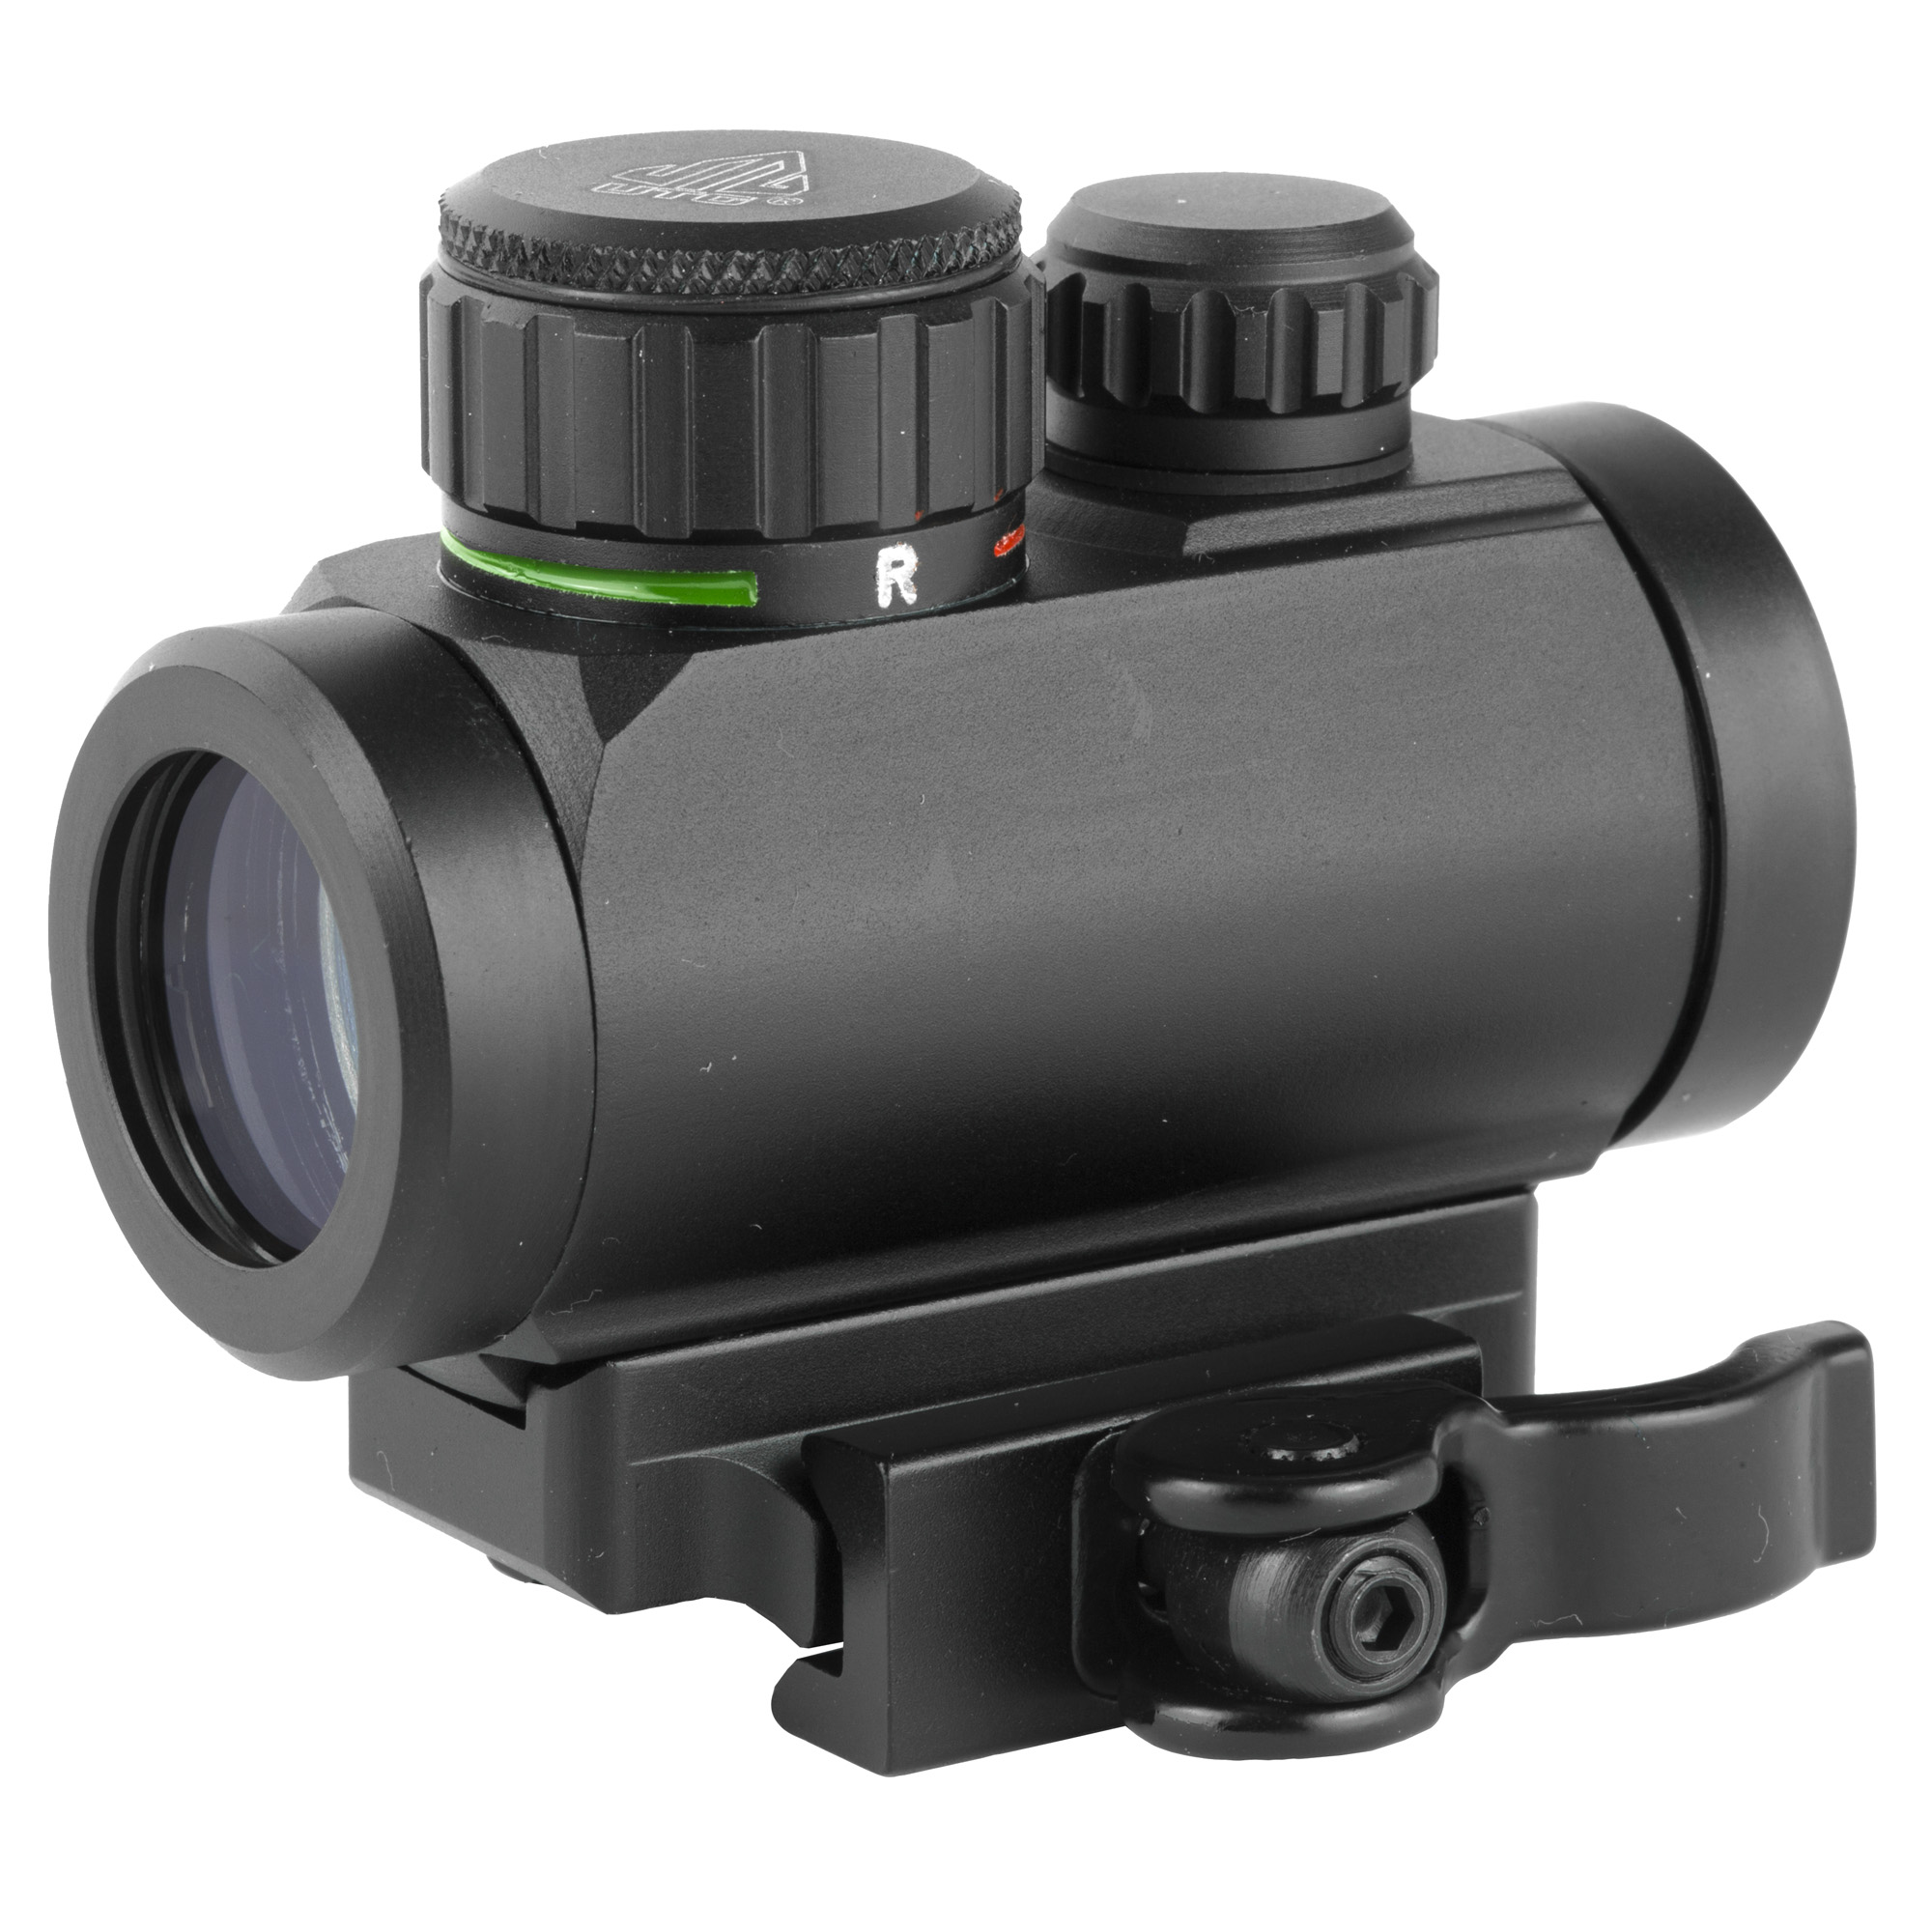 Leapers UTG ITA Red/Green CQB Micro Dot Sight 2.6